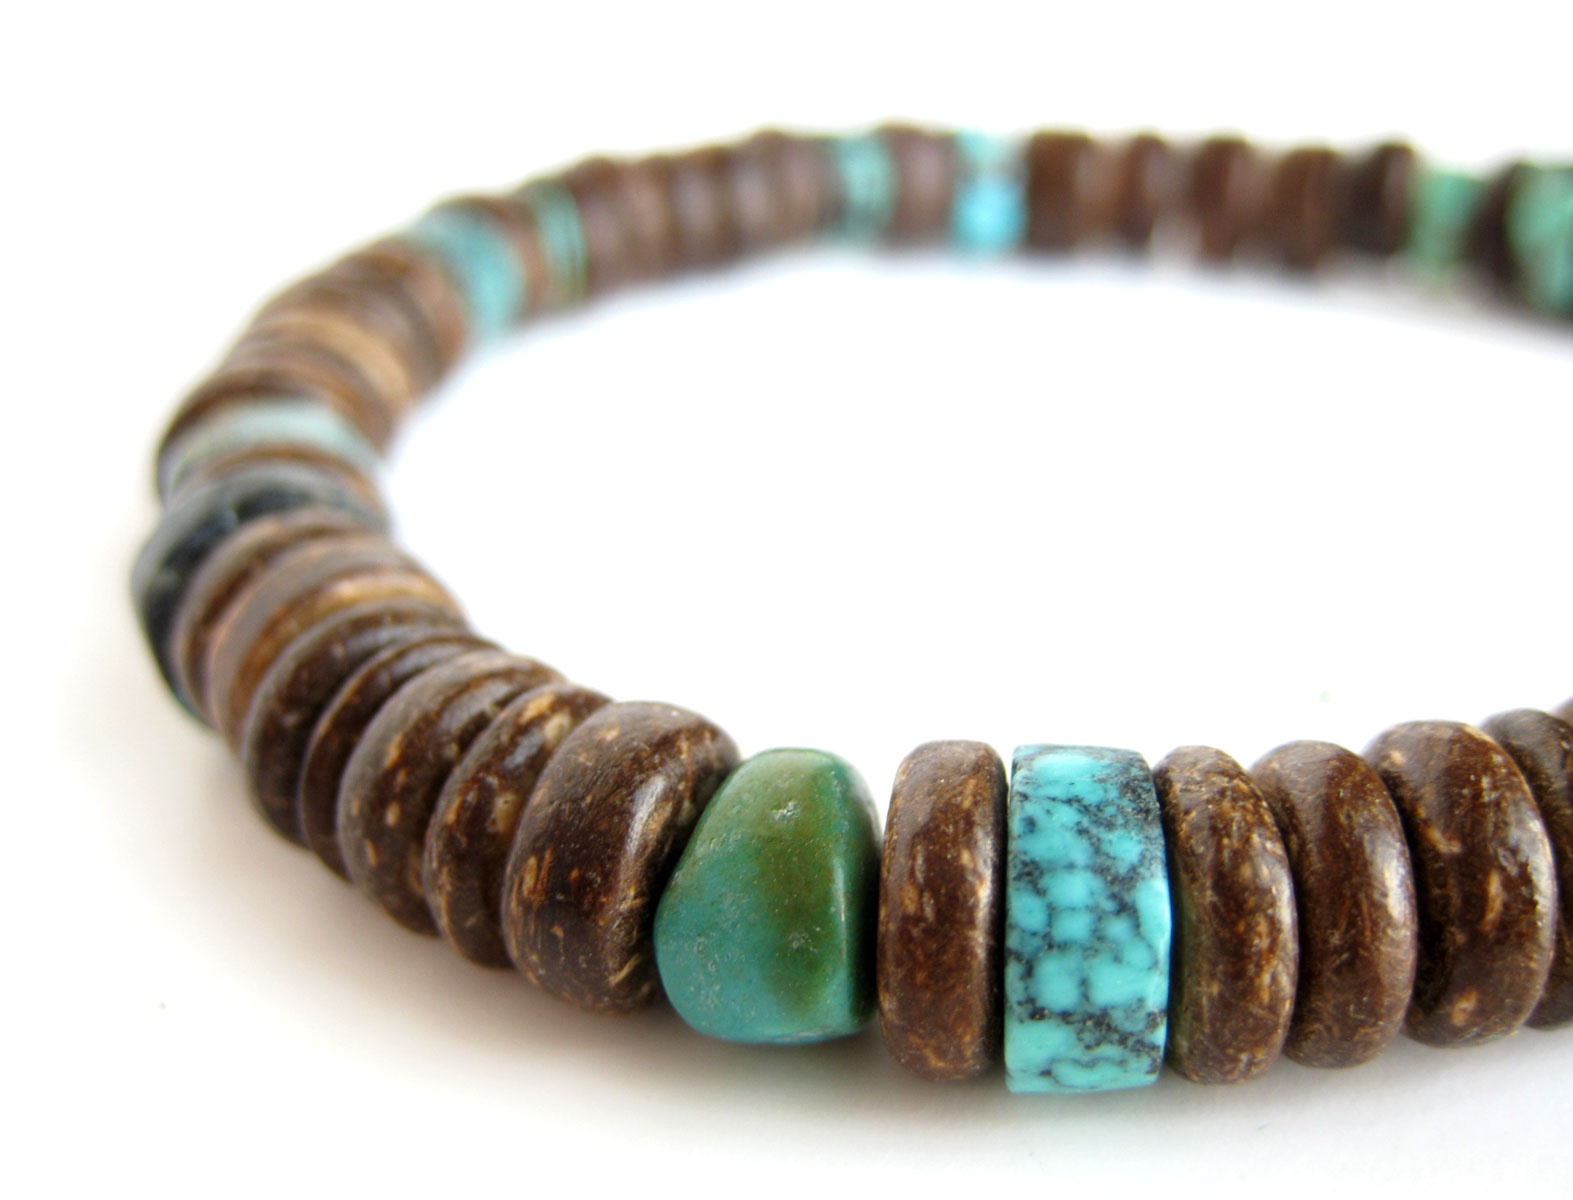 Tribal Turquoise Bracelet For Outdoorsy Men By Jenny Hoople Of Authentic  Arts